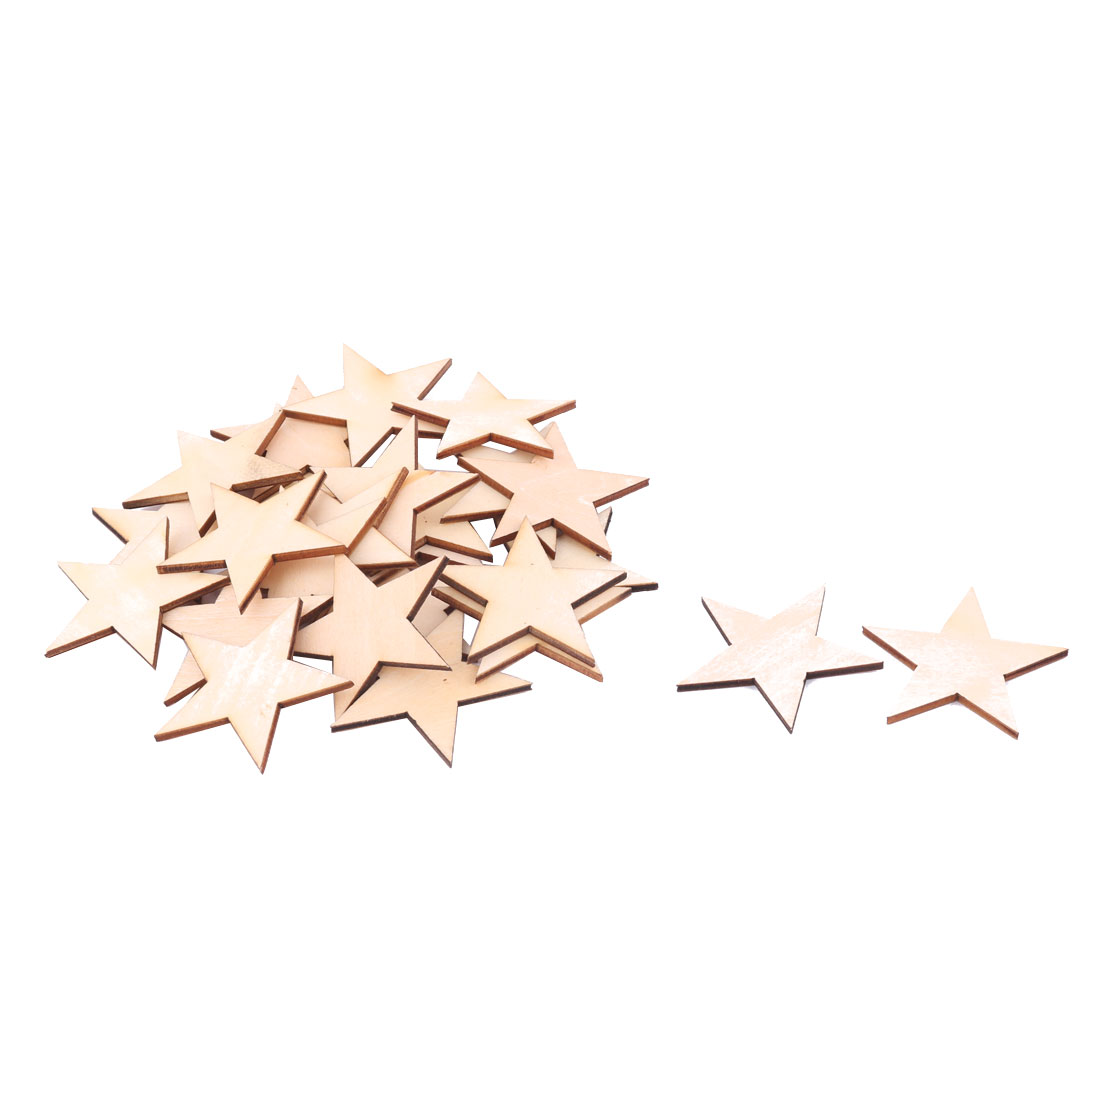 Wooden Star Shaped DIY Craft Christmas Tree Accessories Ornaments Beige 60 x 60mm 25pcs